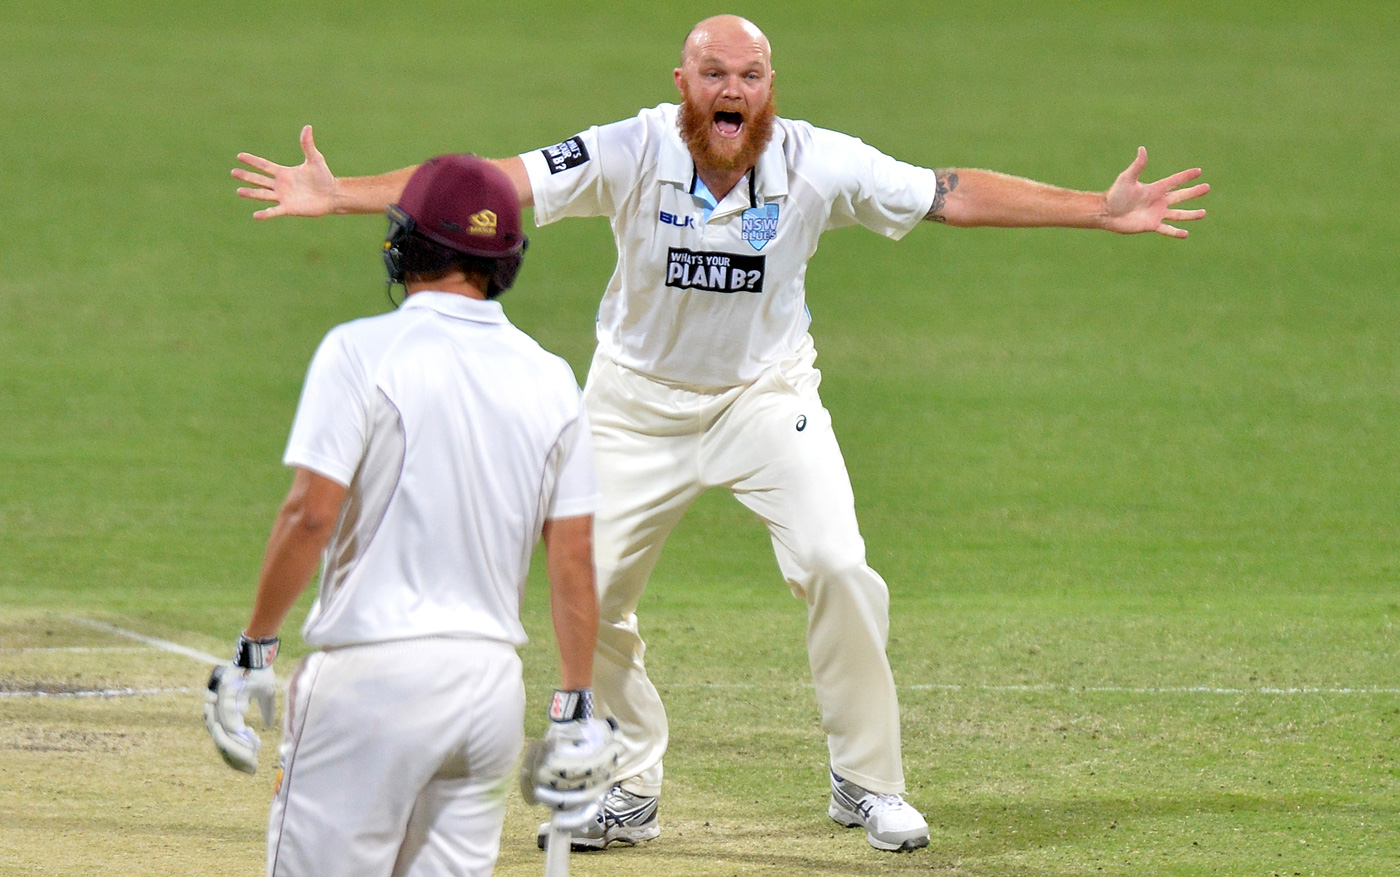 Beware the bald: if they don't mind getting sunstroke, what are the likes of Doug Bollinger going to do to you?